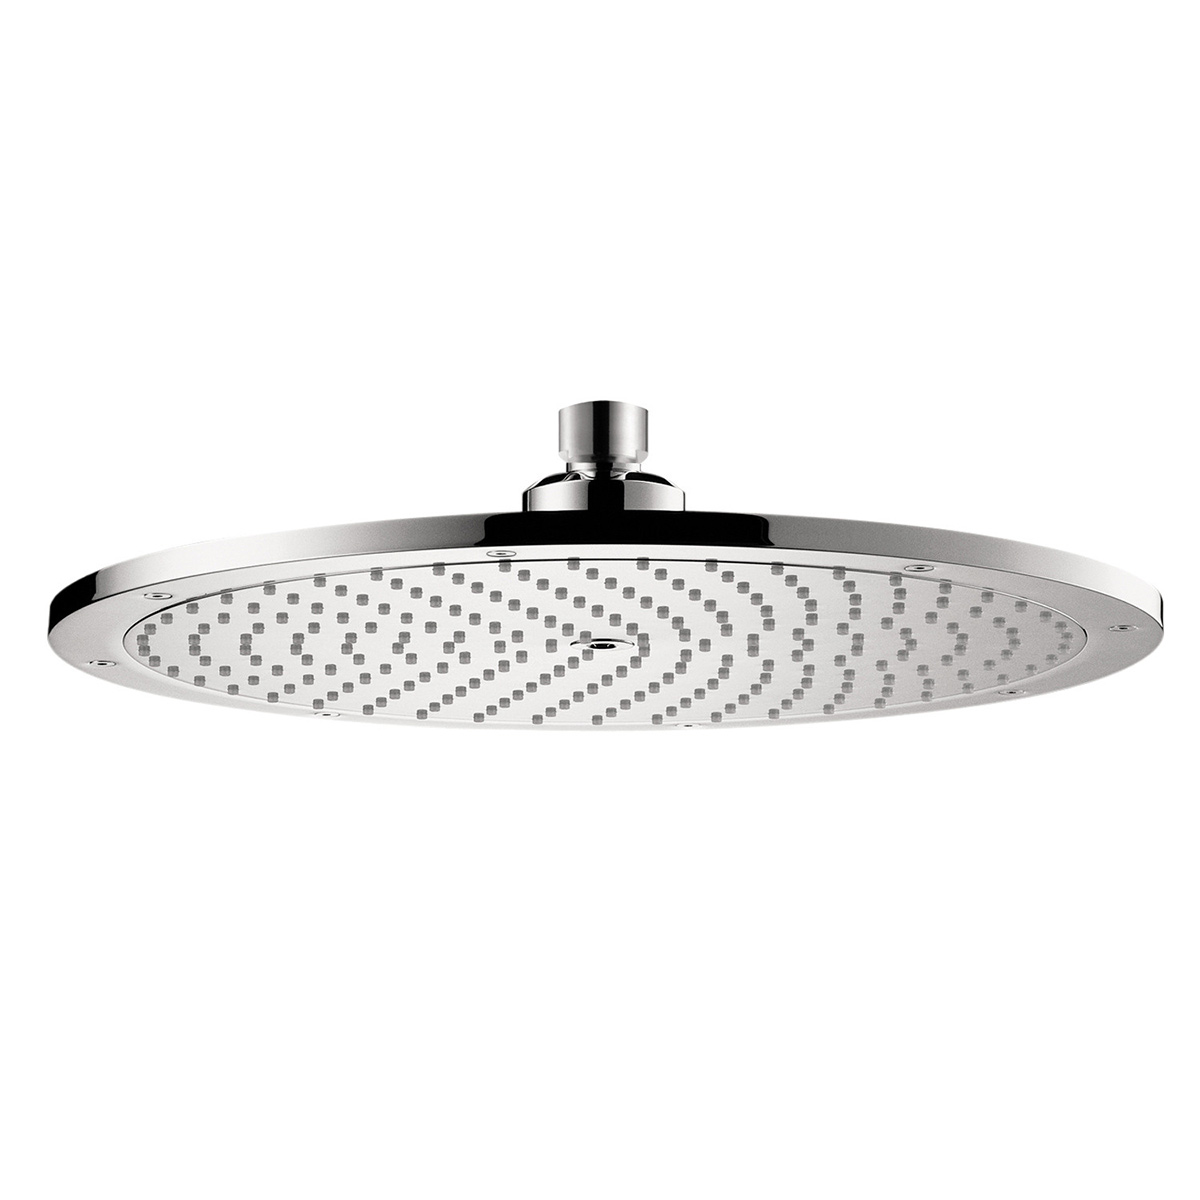 Hansgrohe 28420001 Chrome Raindance Royale Rain 2.5 GPM Shower Head